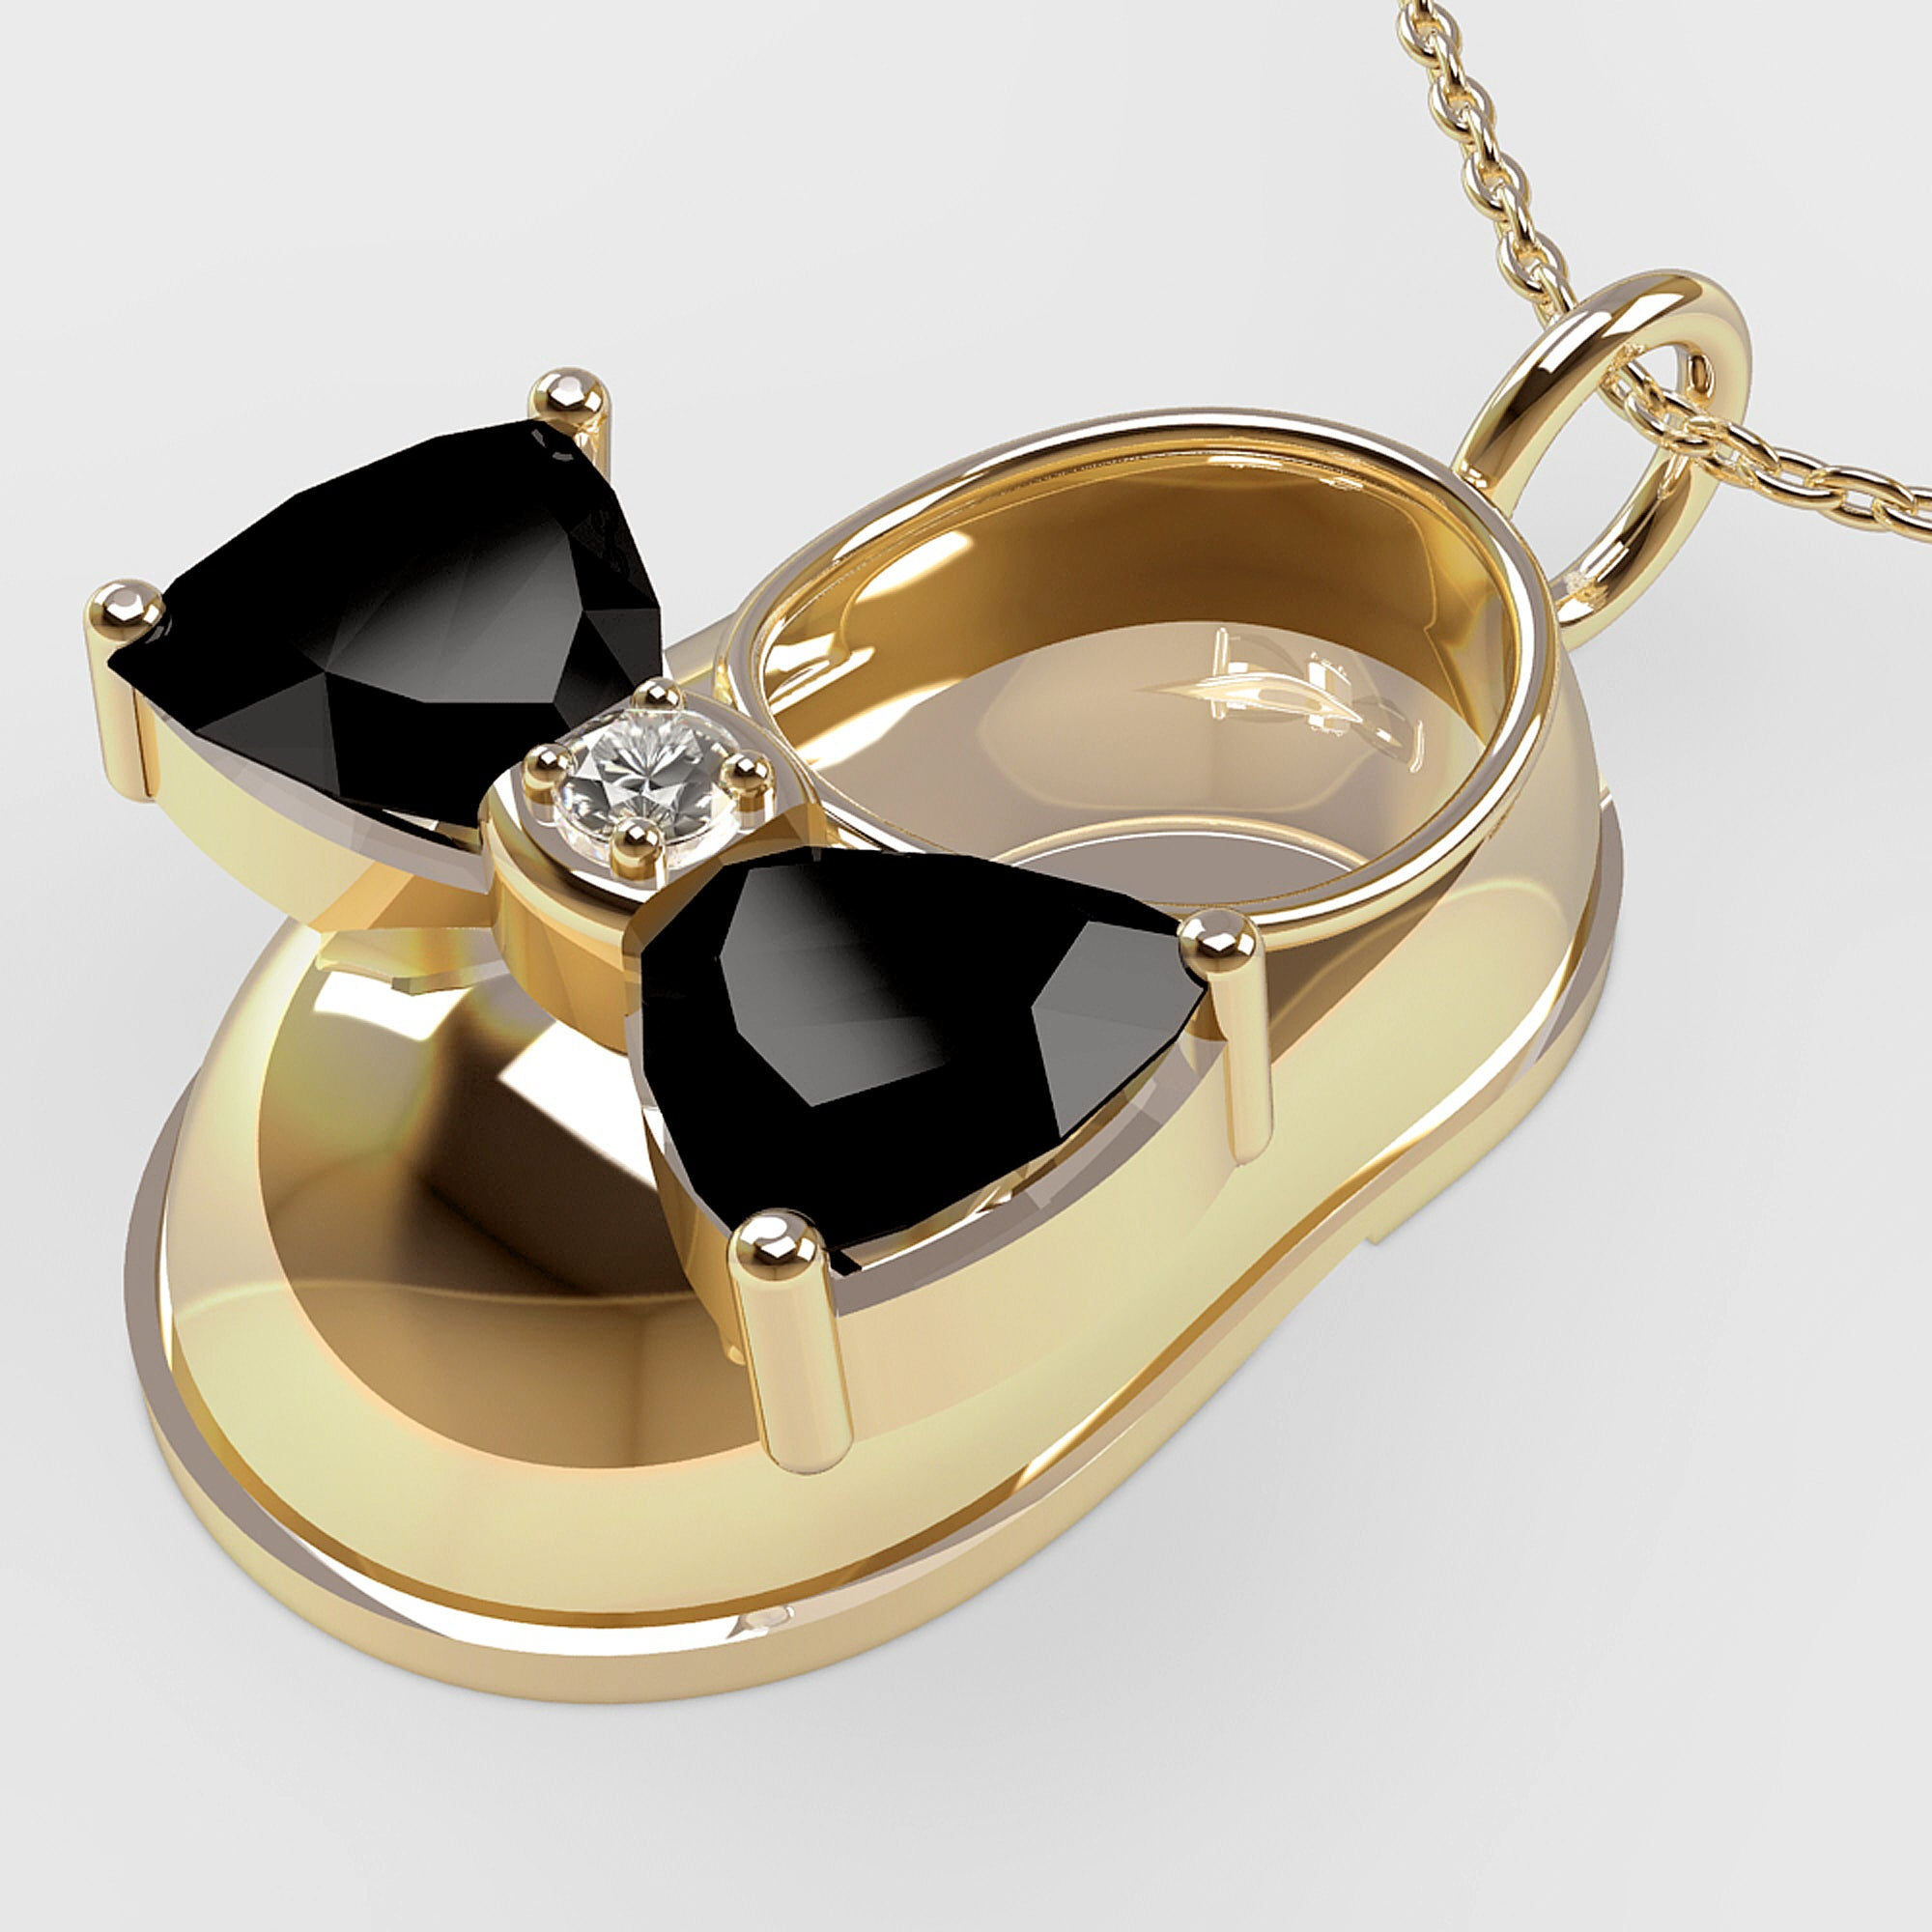 14K Yellow Gold Diamond and Onyx Baby Shoe Pendant